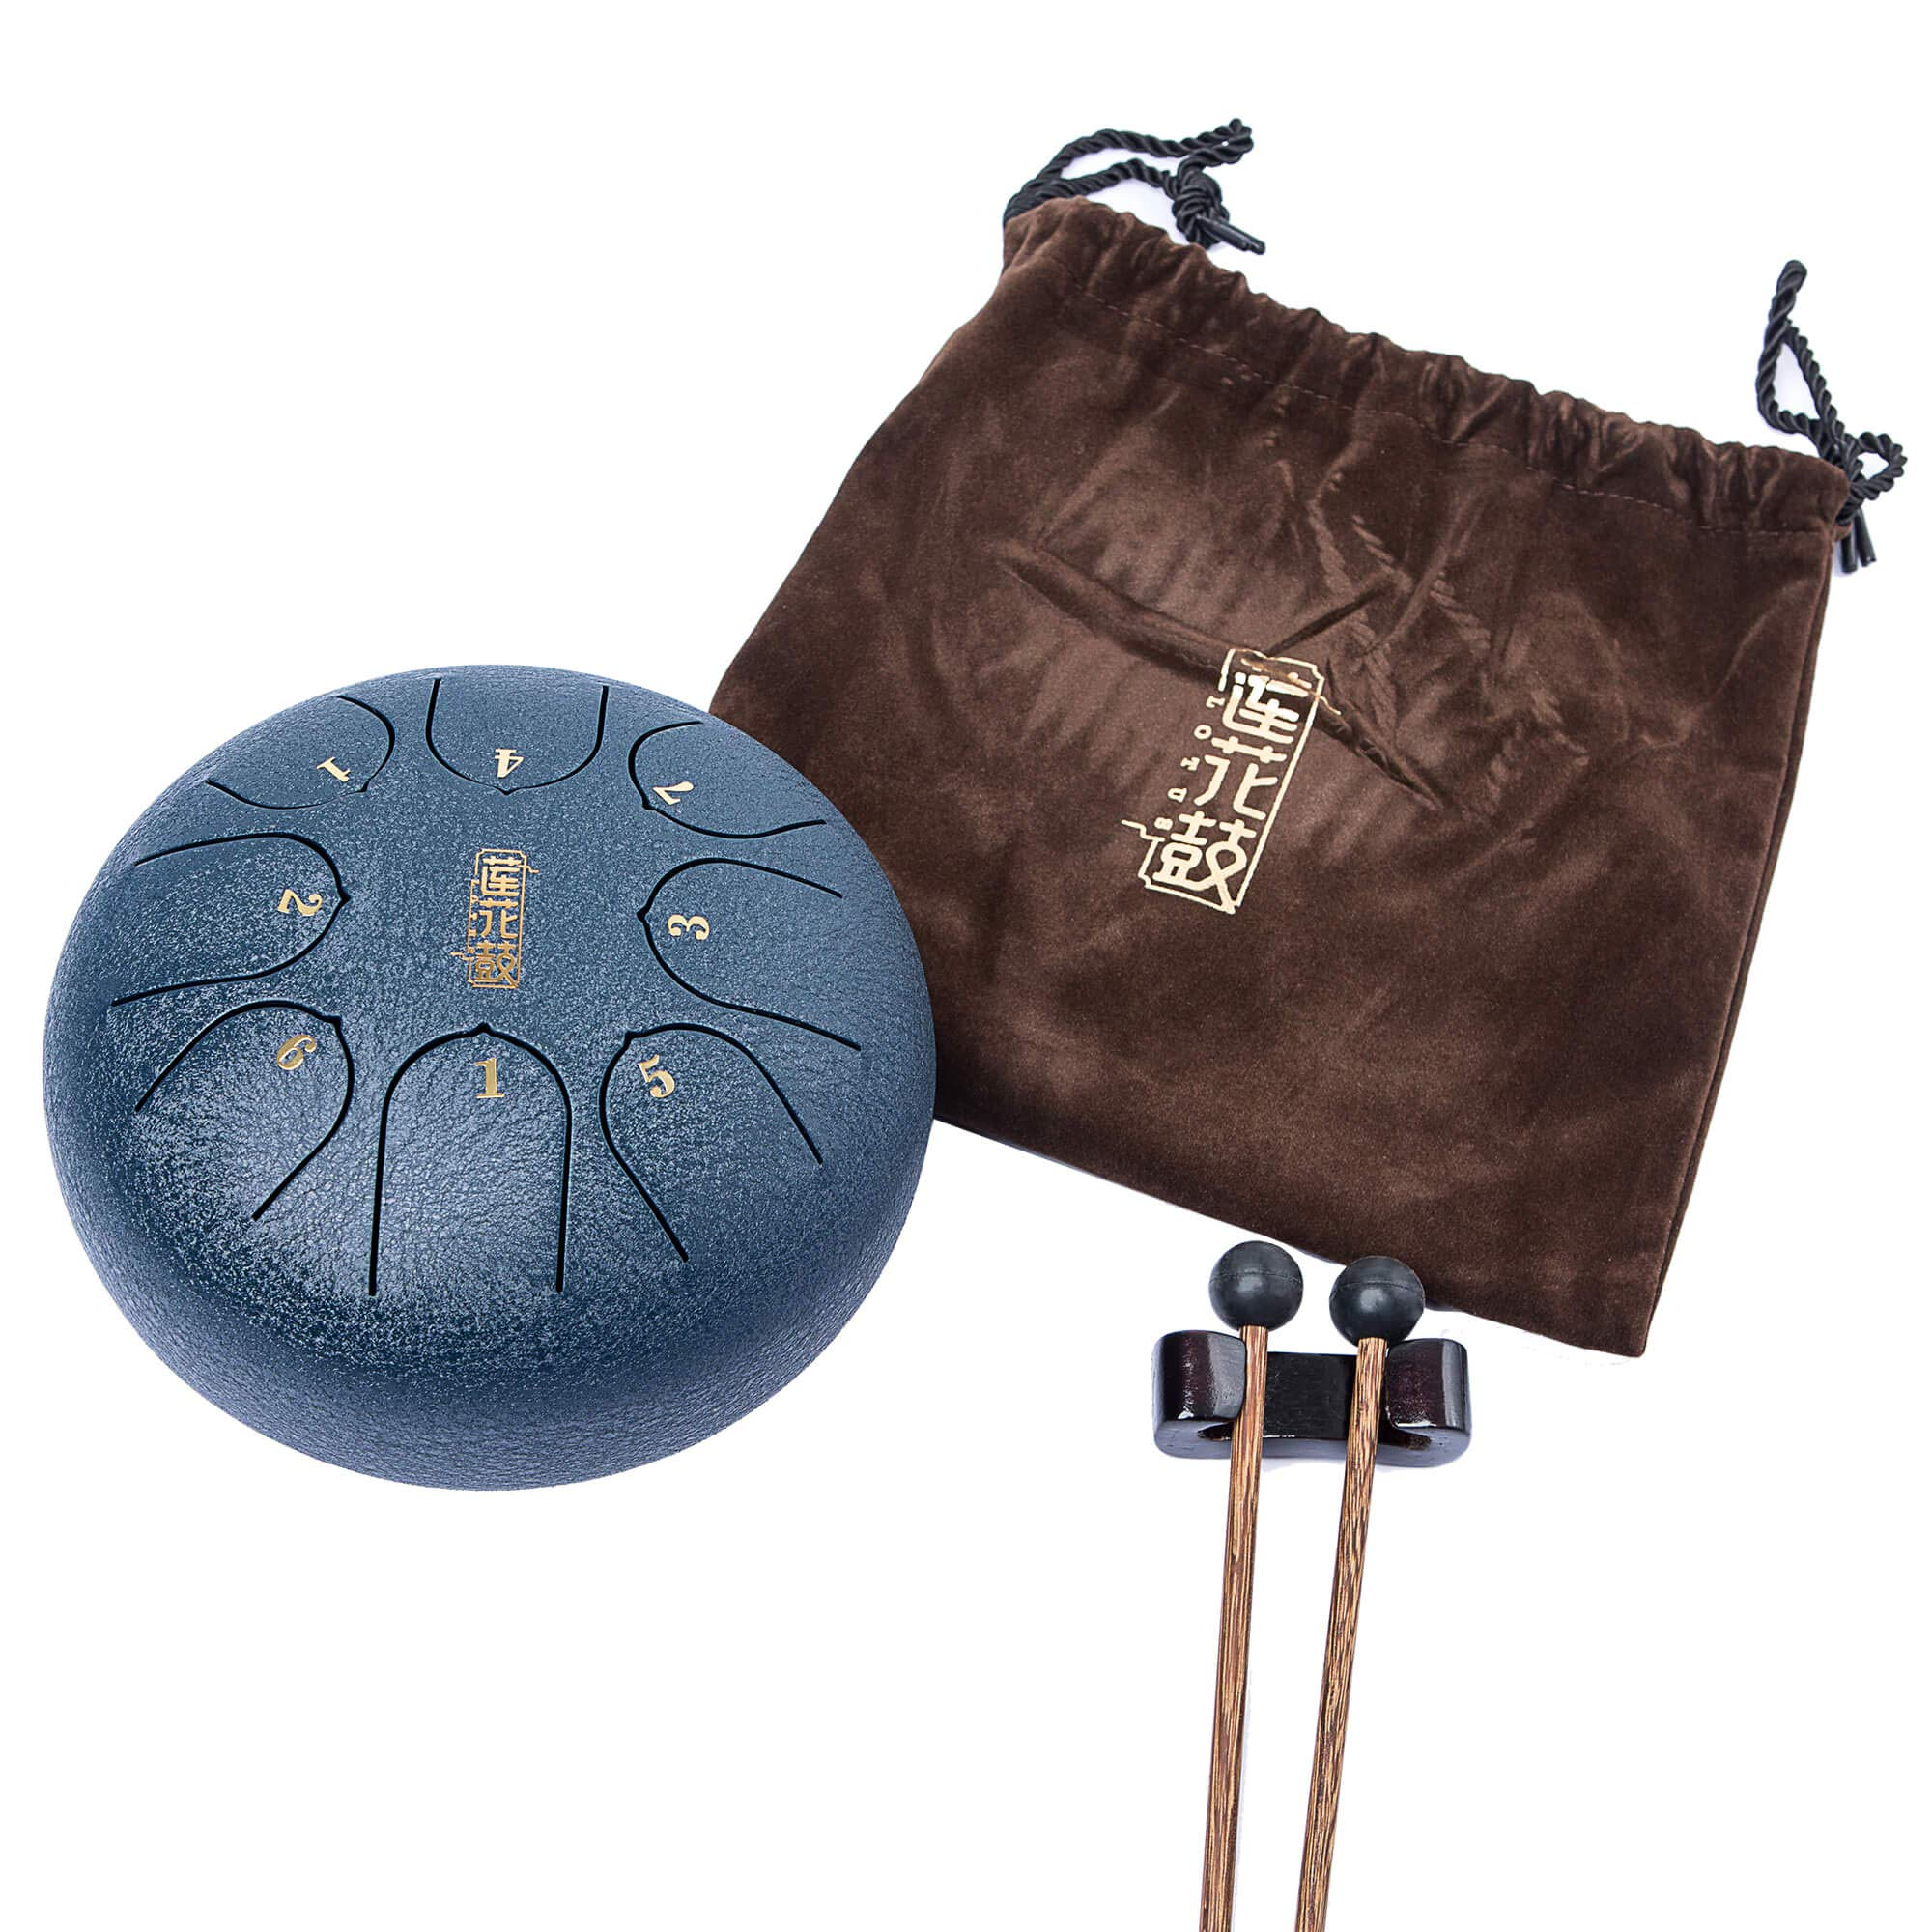 Handpan Tongue Drum 8 Notes 6 Inches Chakra Tank Drum Steel Percussion Hang Drum Instrument with Padded Travel Bag and Mallets Blue (6) by sz